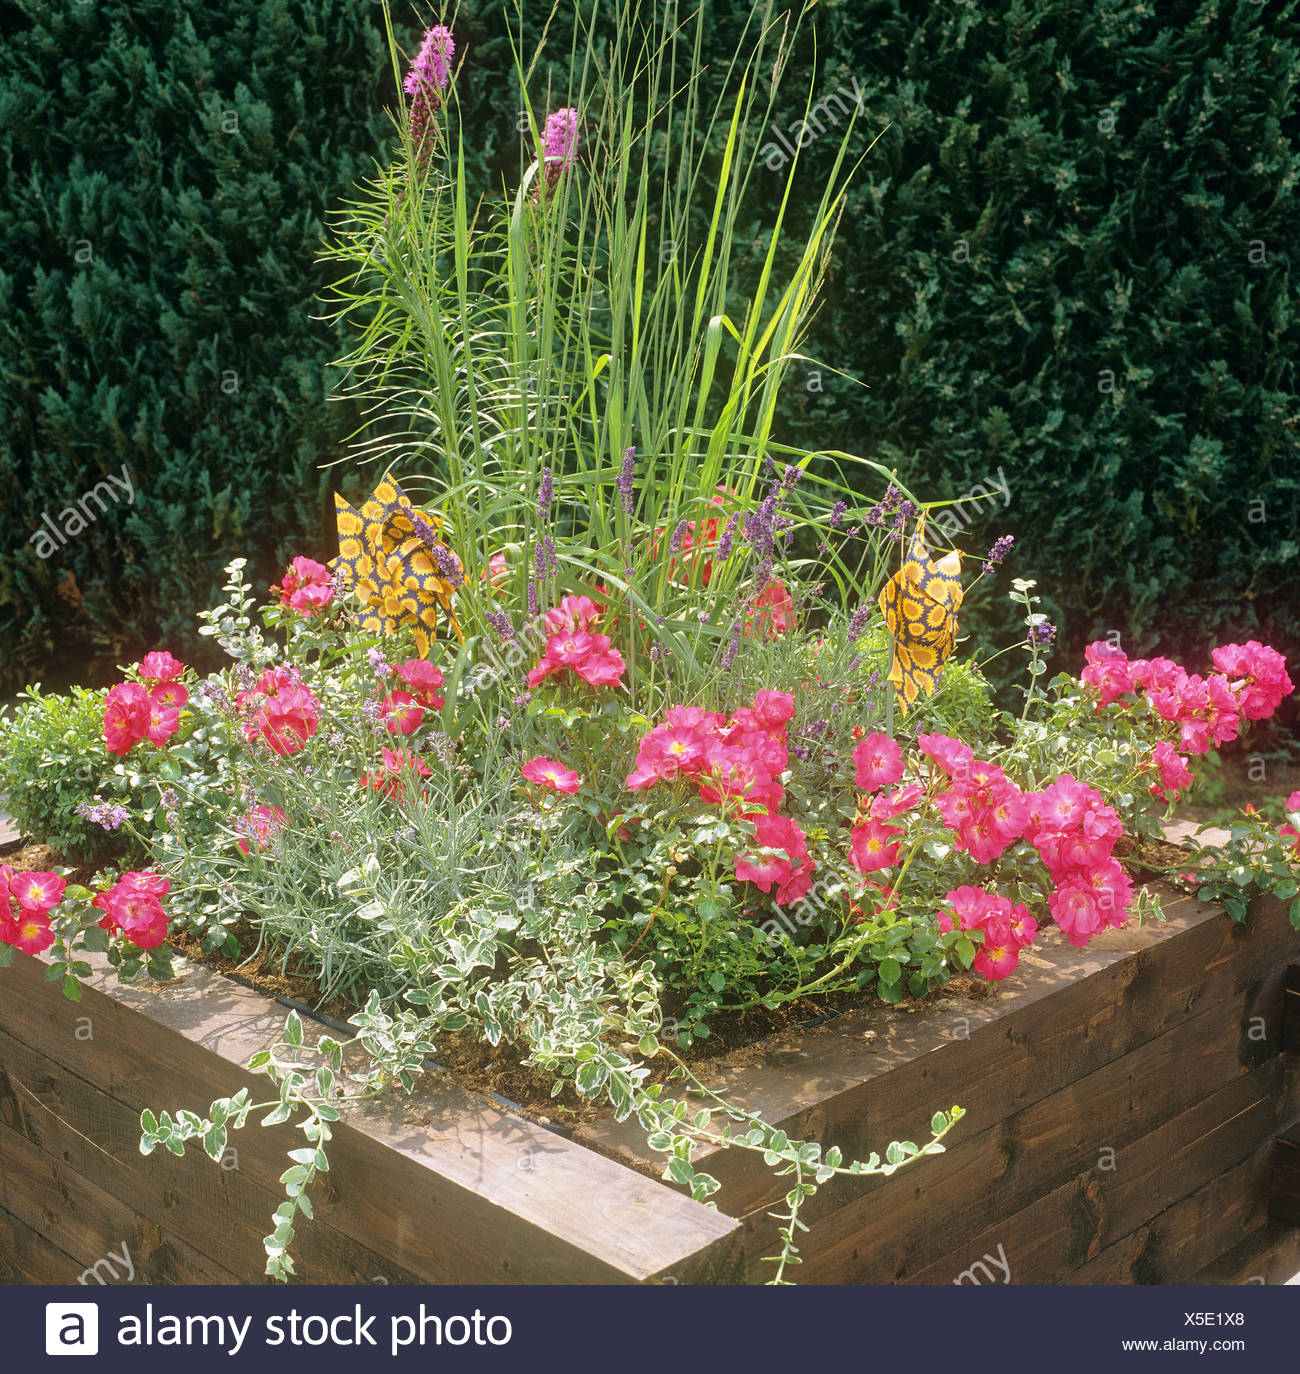 wooden tub with different flowers and plants Stock Photo